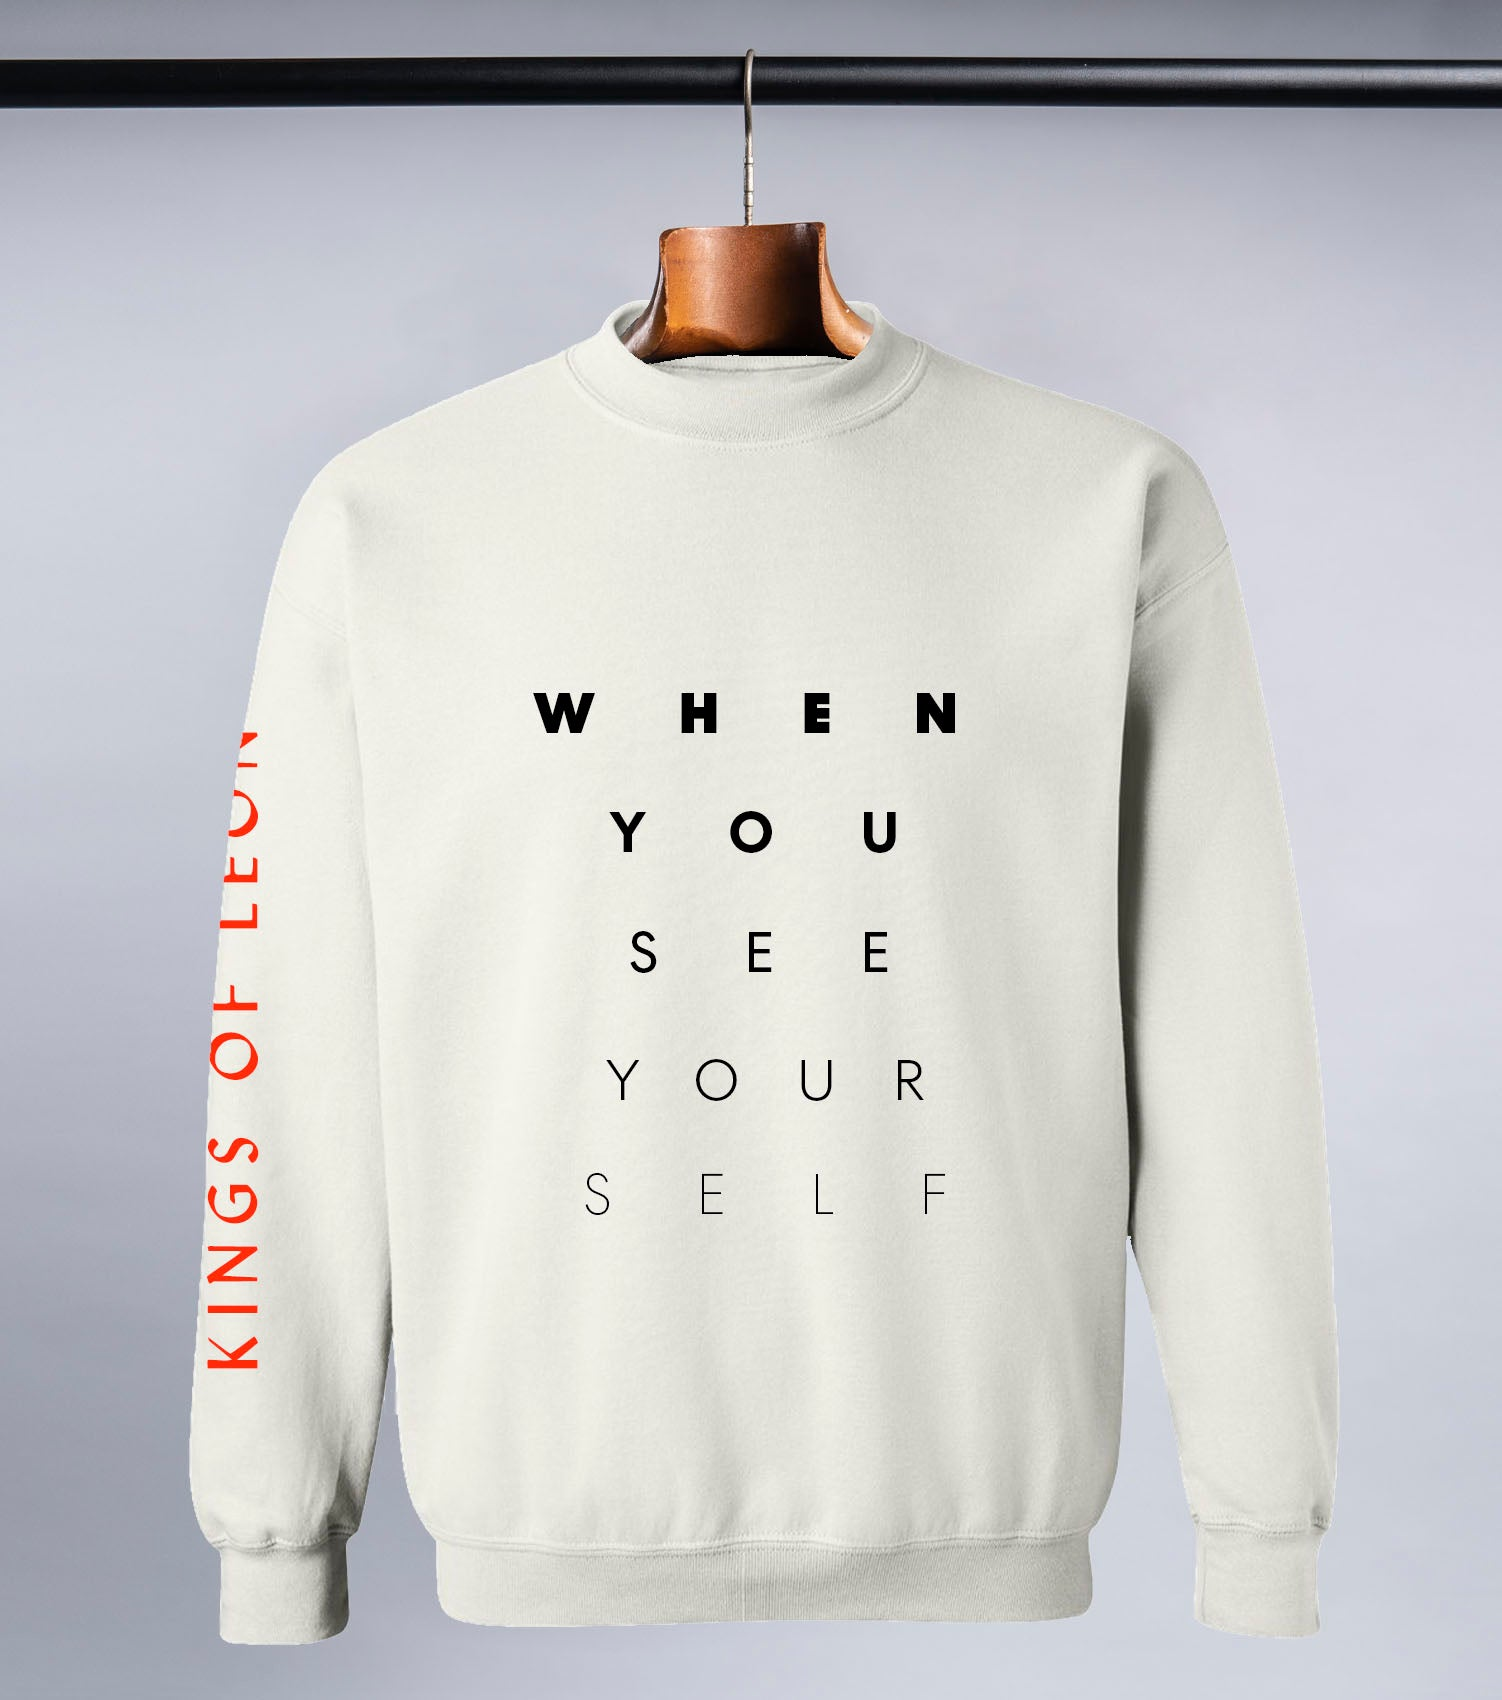 KOL Eyechart Sweatshirt (Cream White)